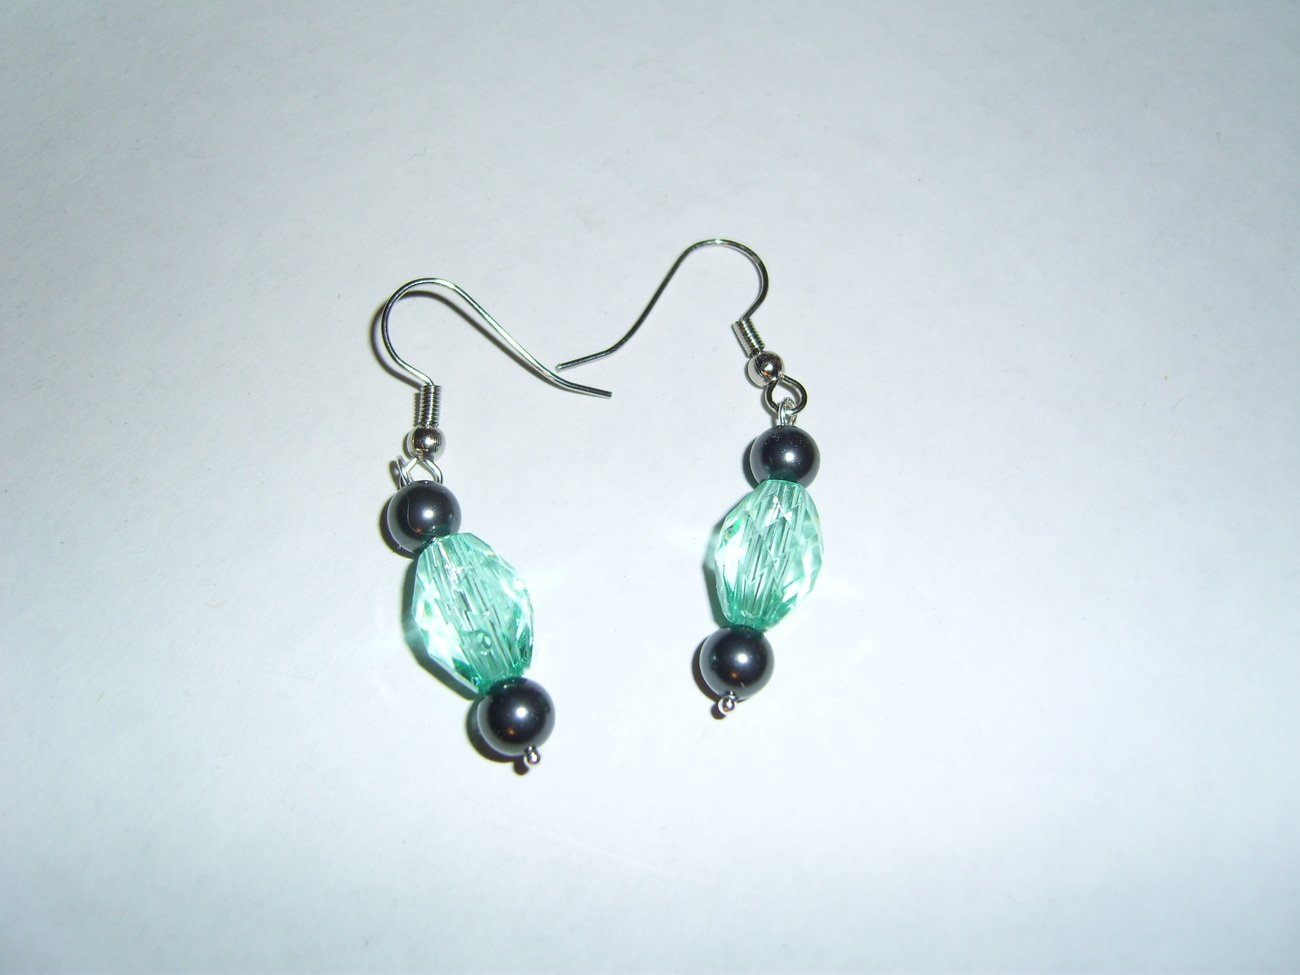 Handmade blue beaded earrings with swarovski black pearls